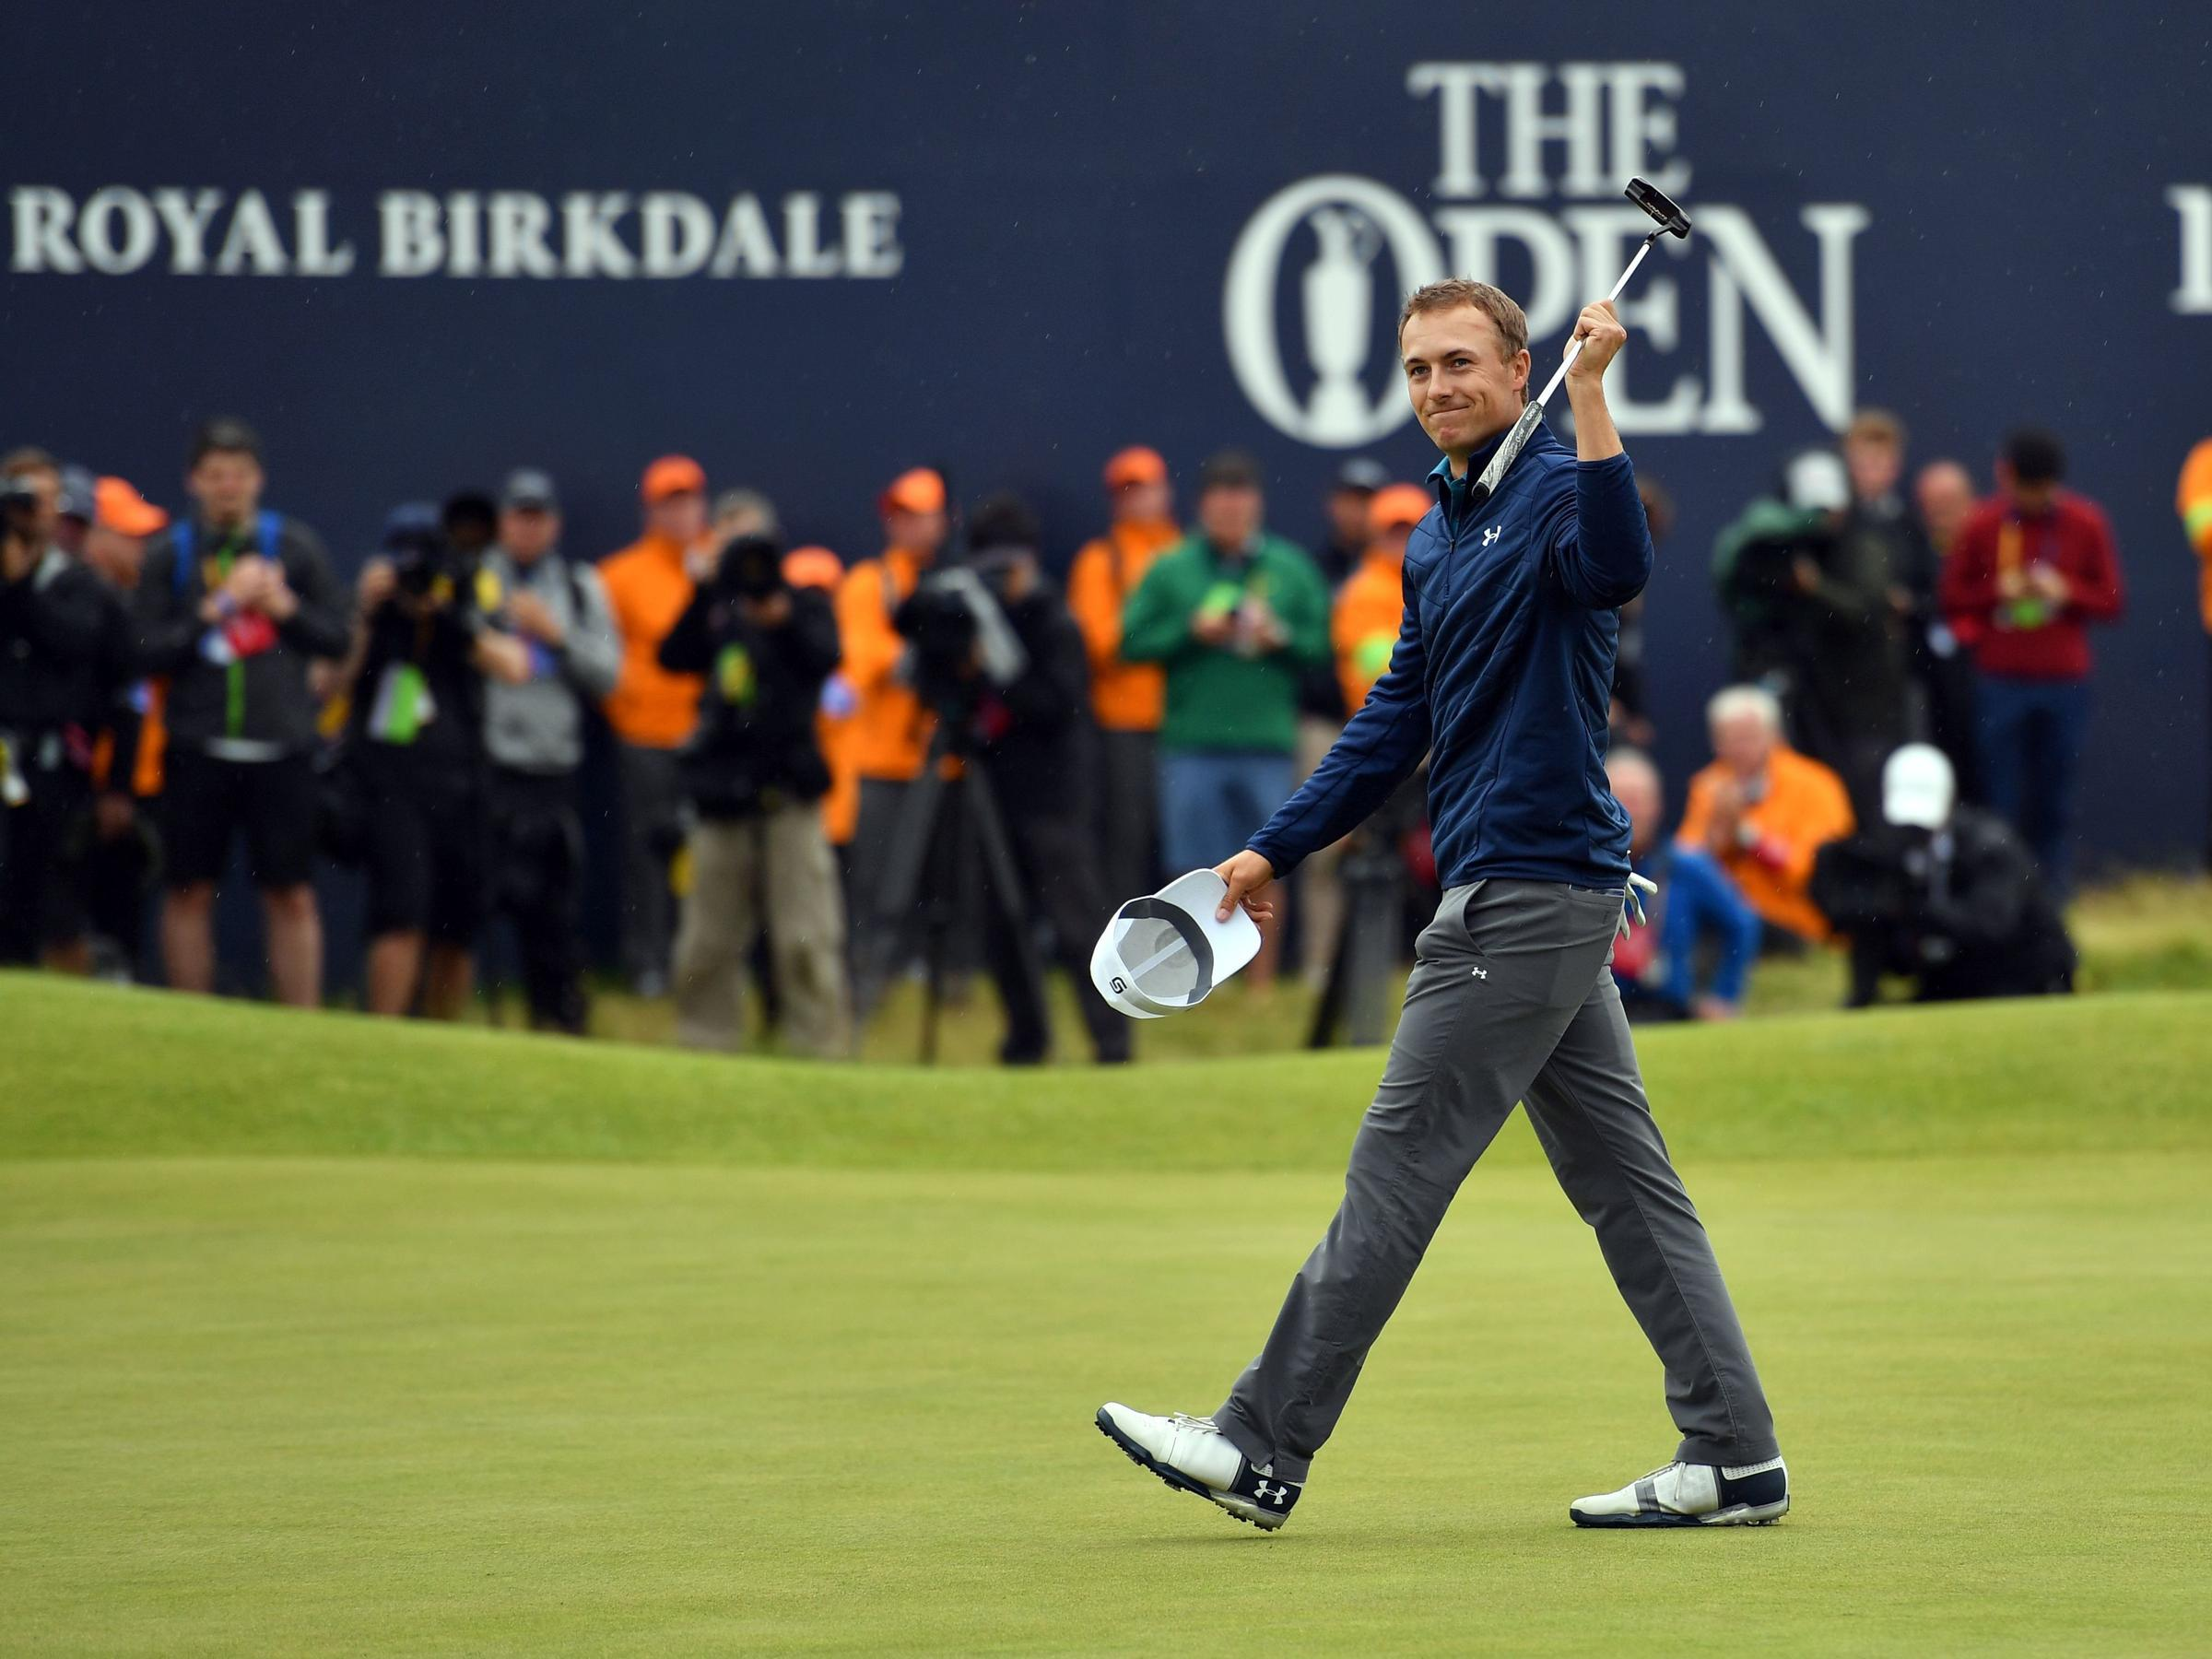 Jordan Spieth Celebrates On The 18th Green After His Final Round 69 To Win The 2017 Open Golf Championship At Royal Birkdale Golf Course In England On July